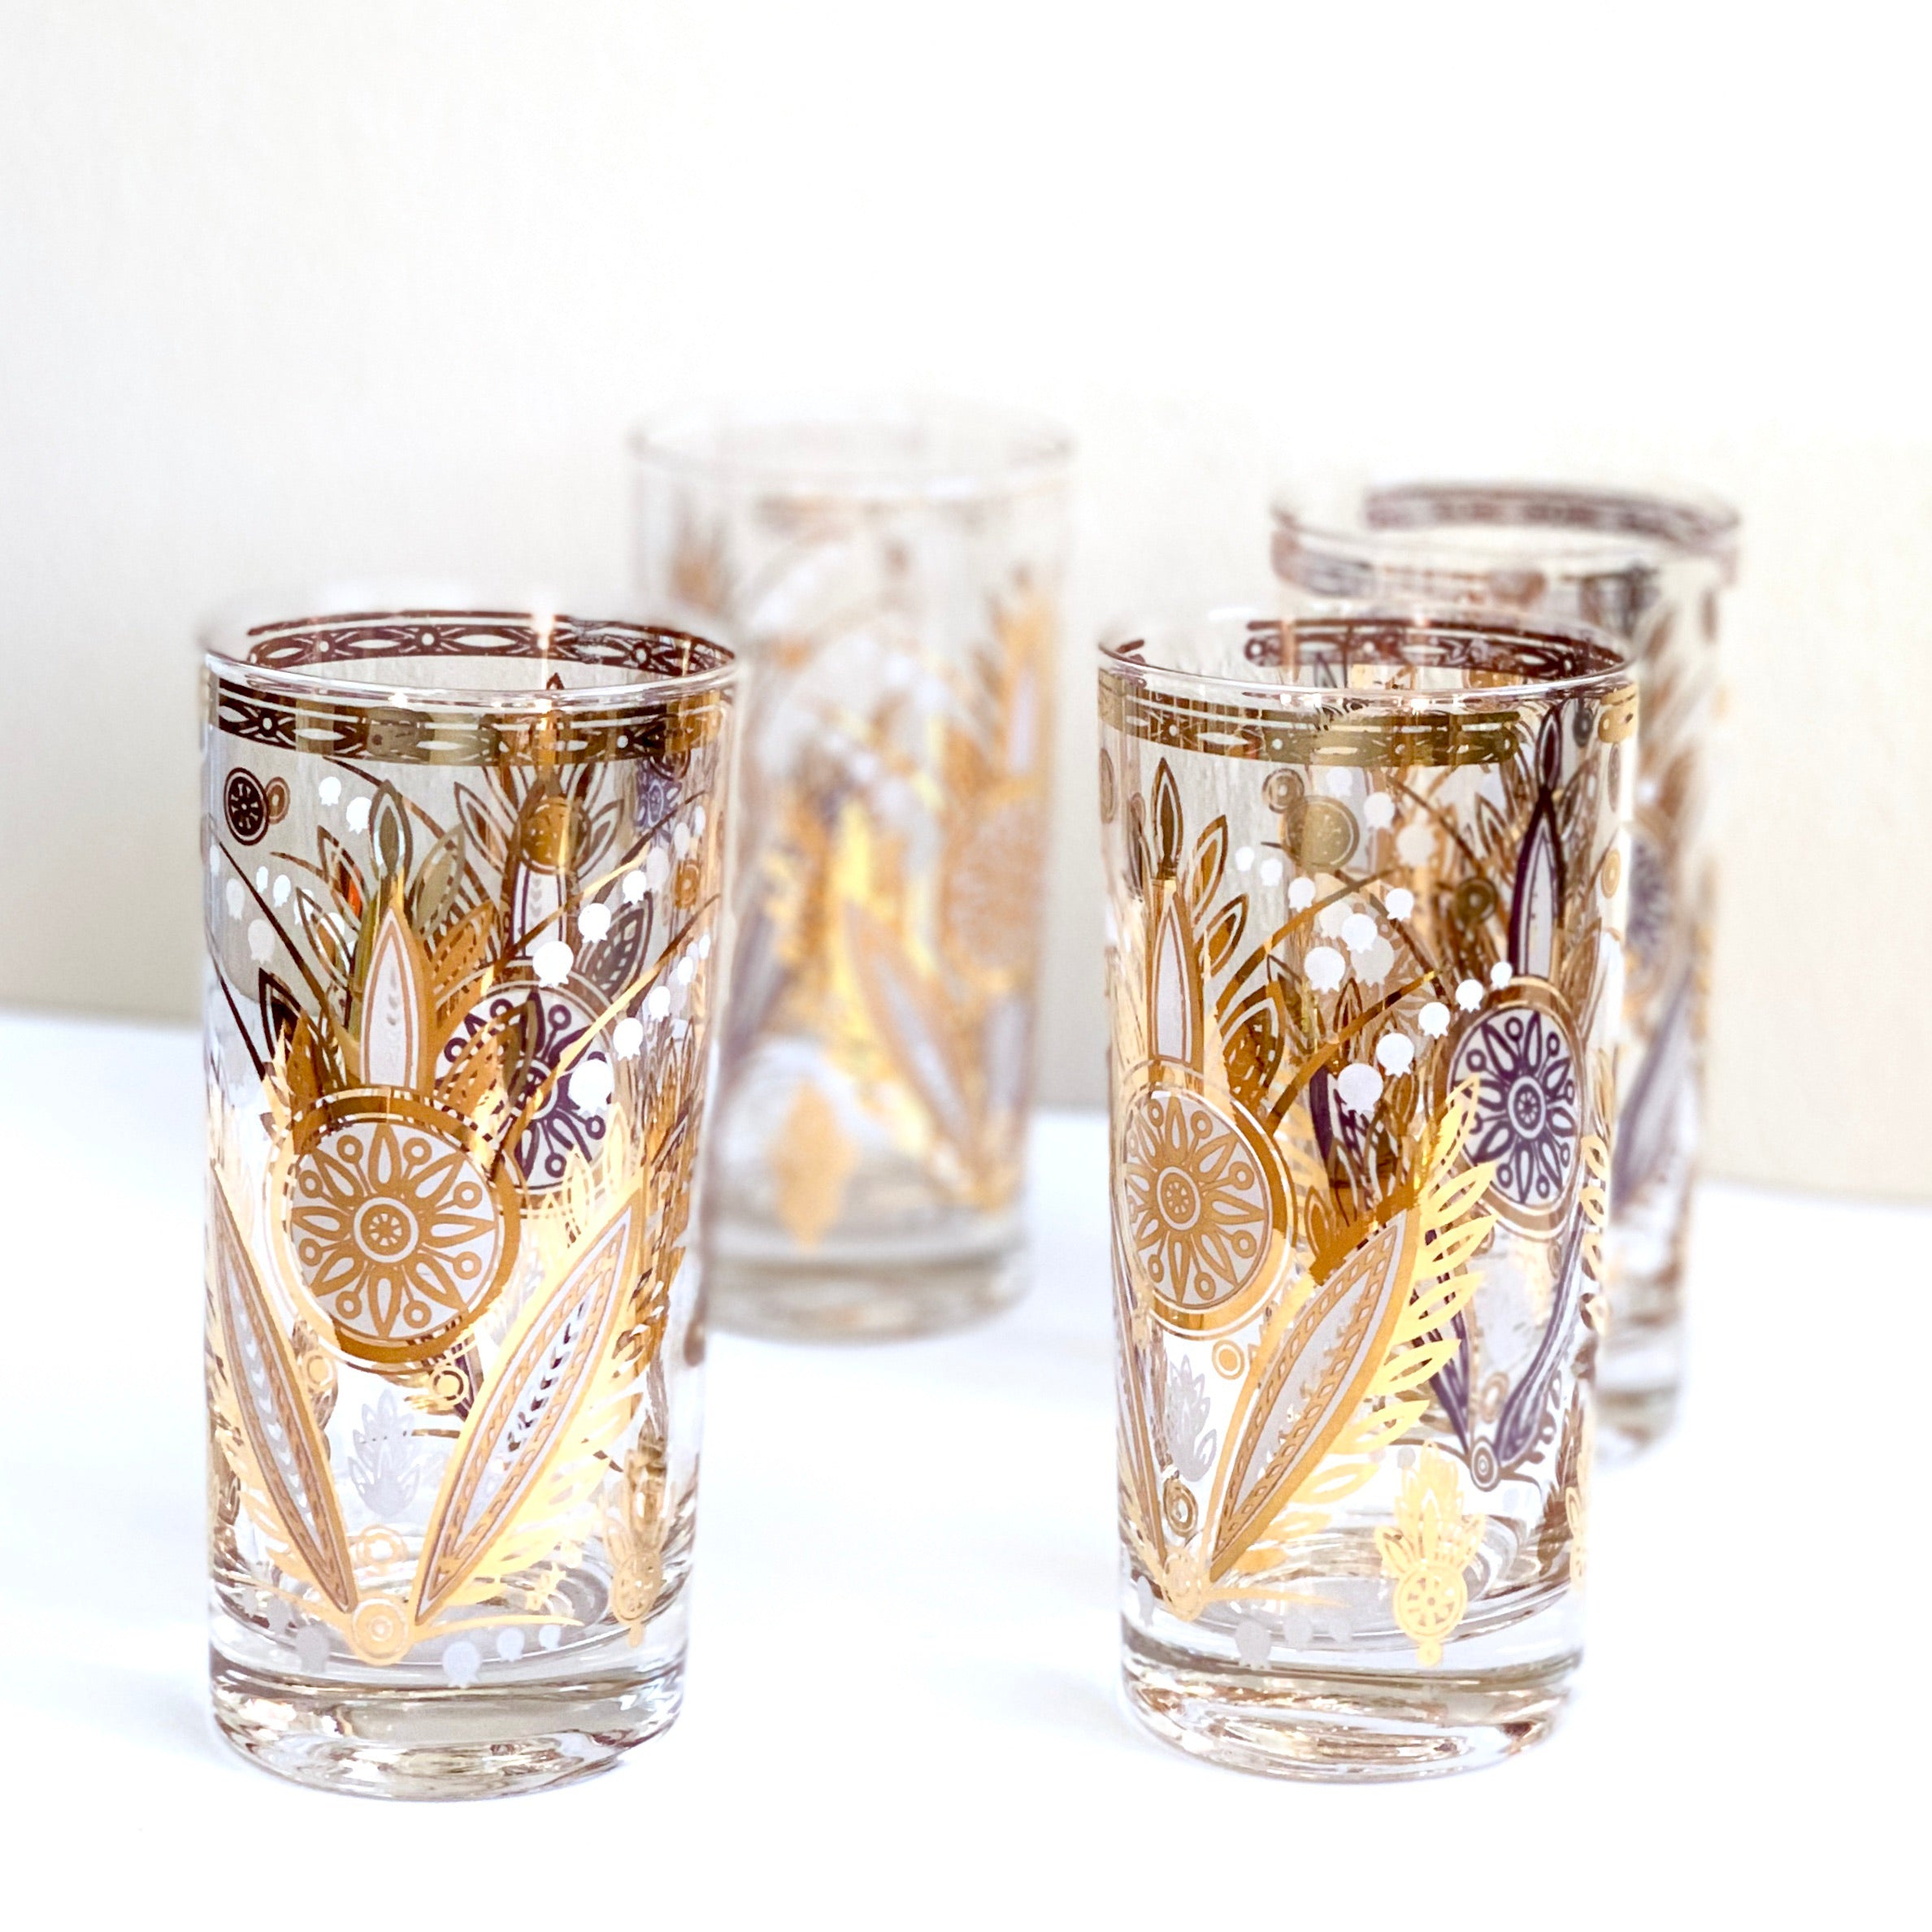 Vintage Metallic Gold Glasses (Set of 4)